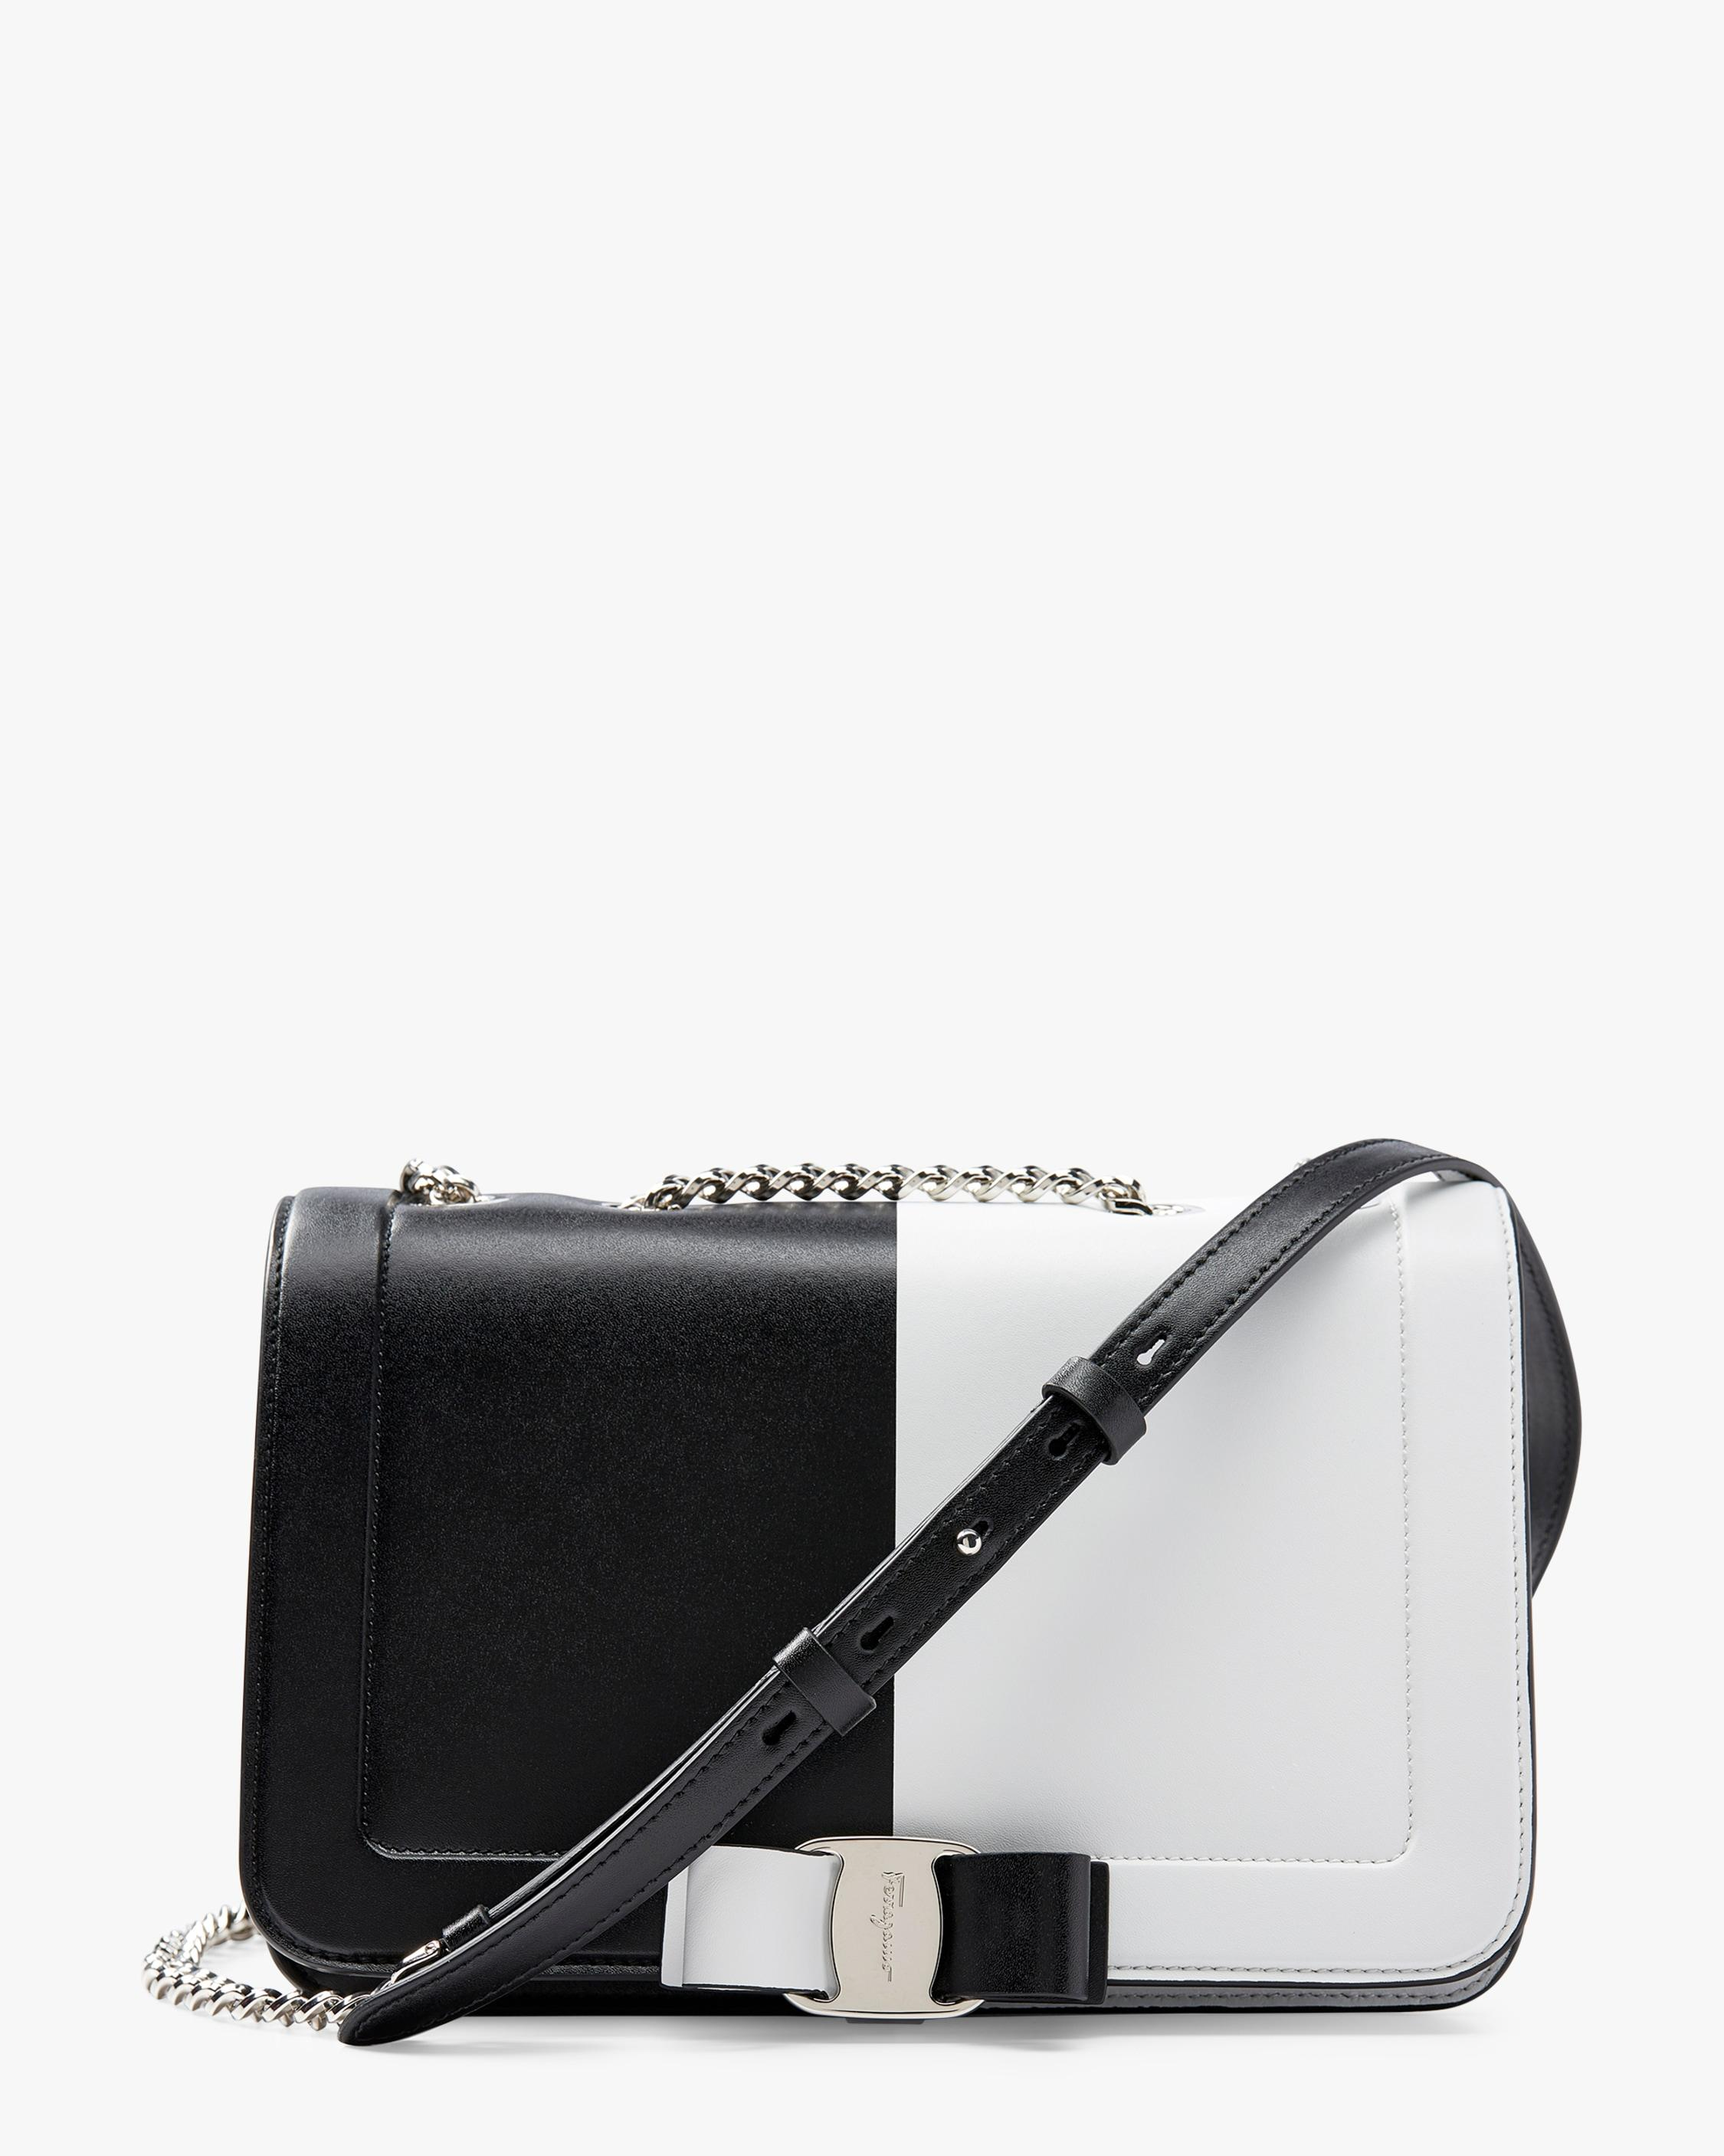 b0fd9f2dc9ba Lyst - Ferragamo Vara Colorblock Leather Shoulder Bag - in Black